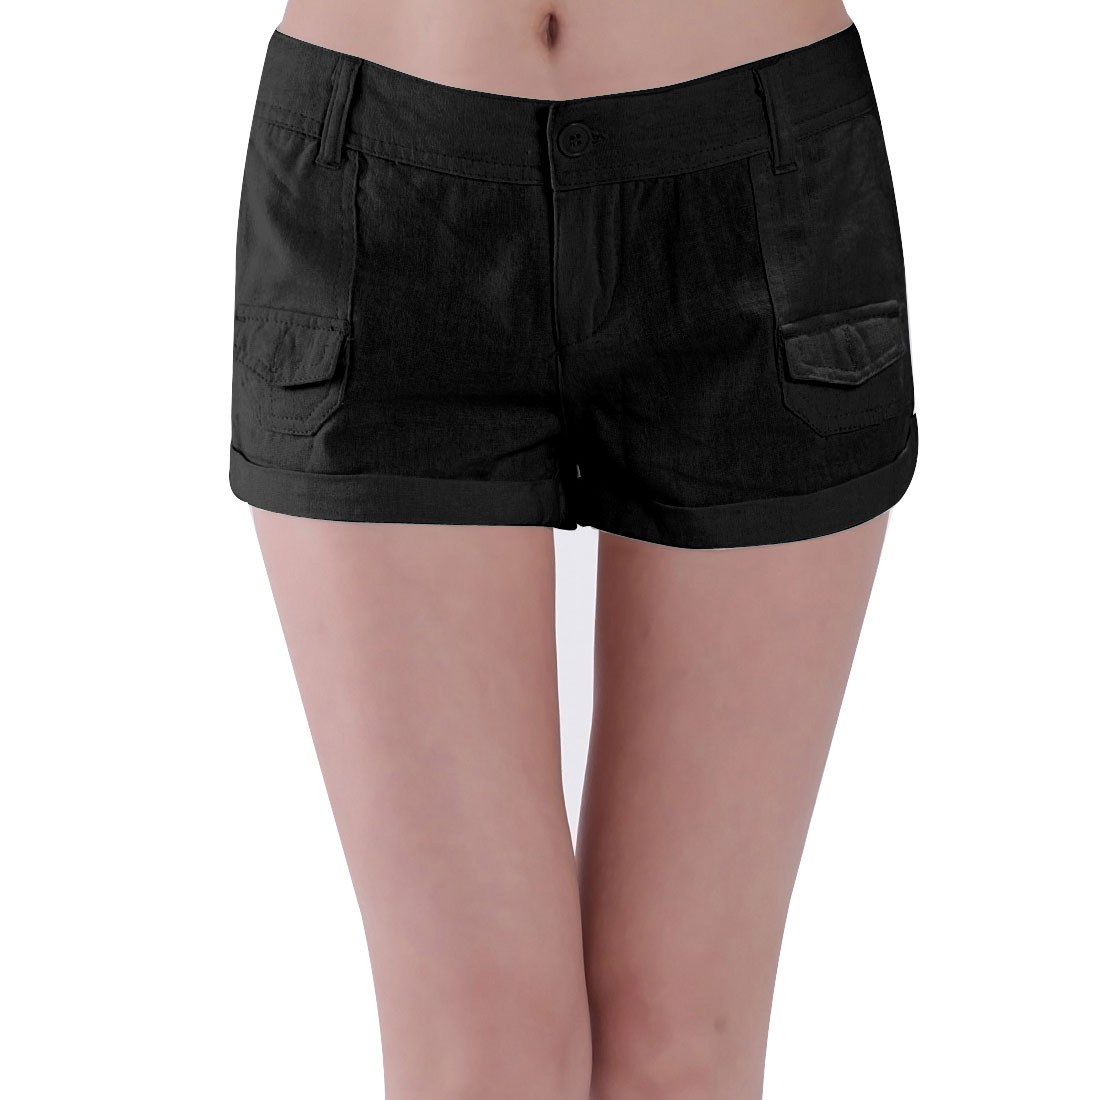 Slanting Pockets Belt Loop Button Closure Shorts Black L for Women